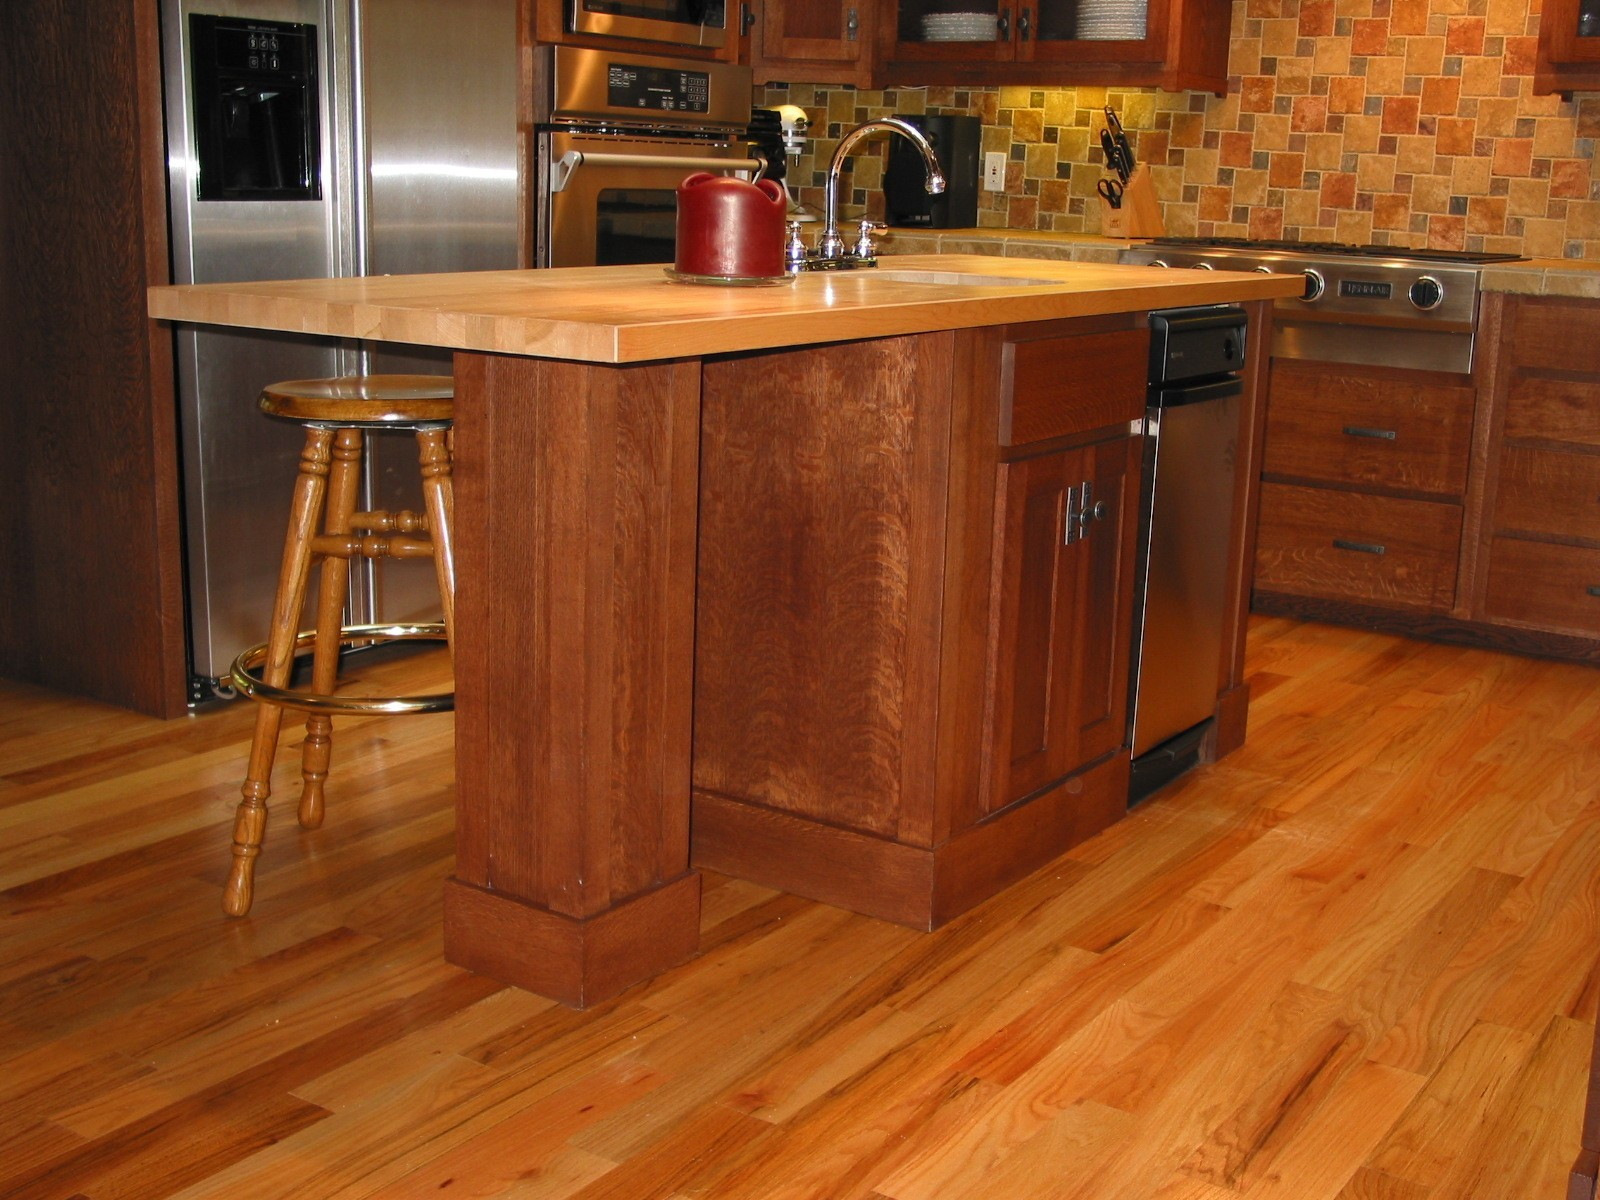 Quarter Sawn White Oak Kitchen Cabinets Quarter sawn oak kitchen